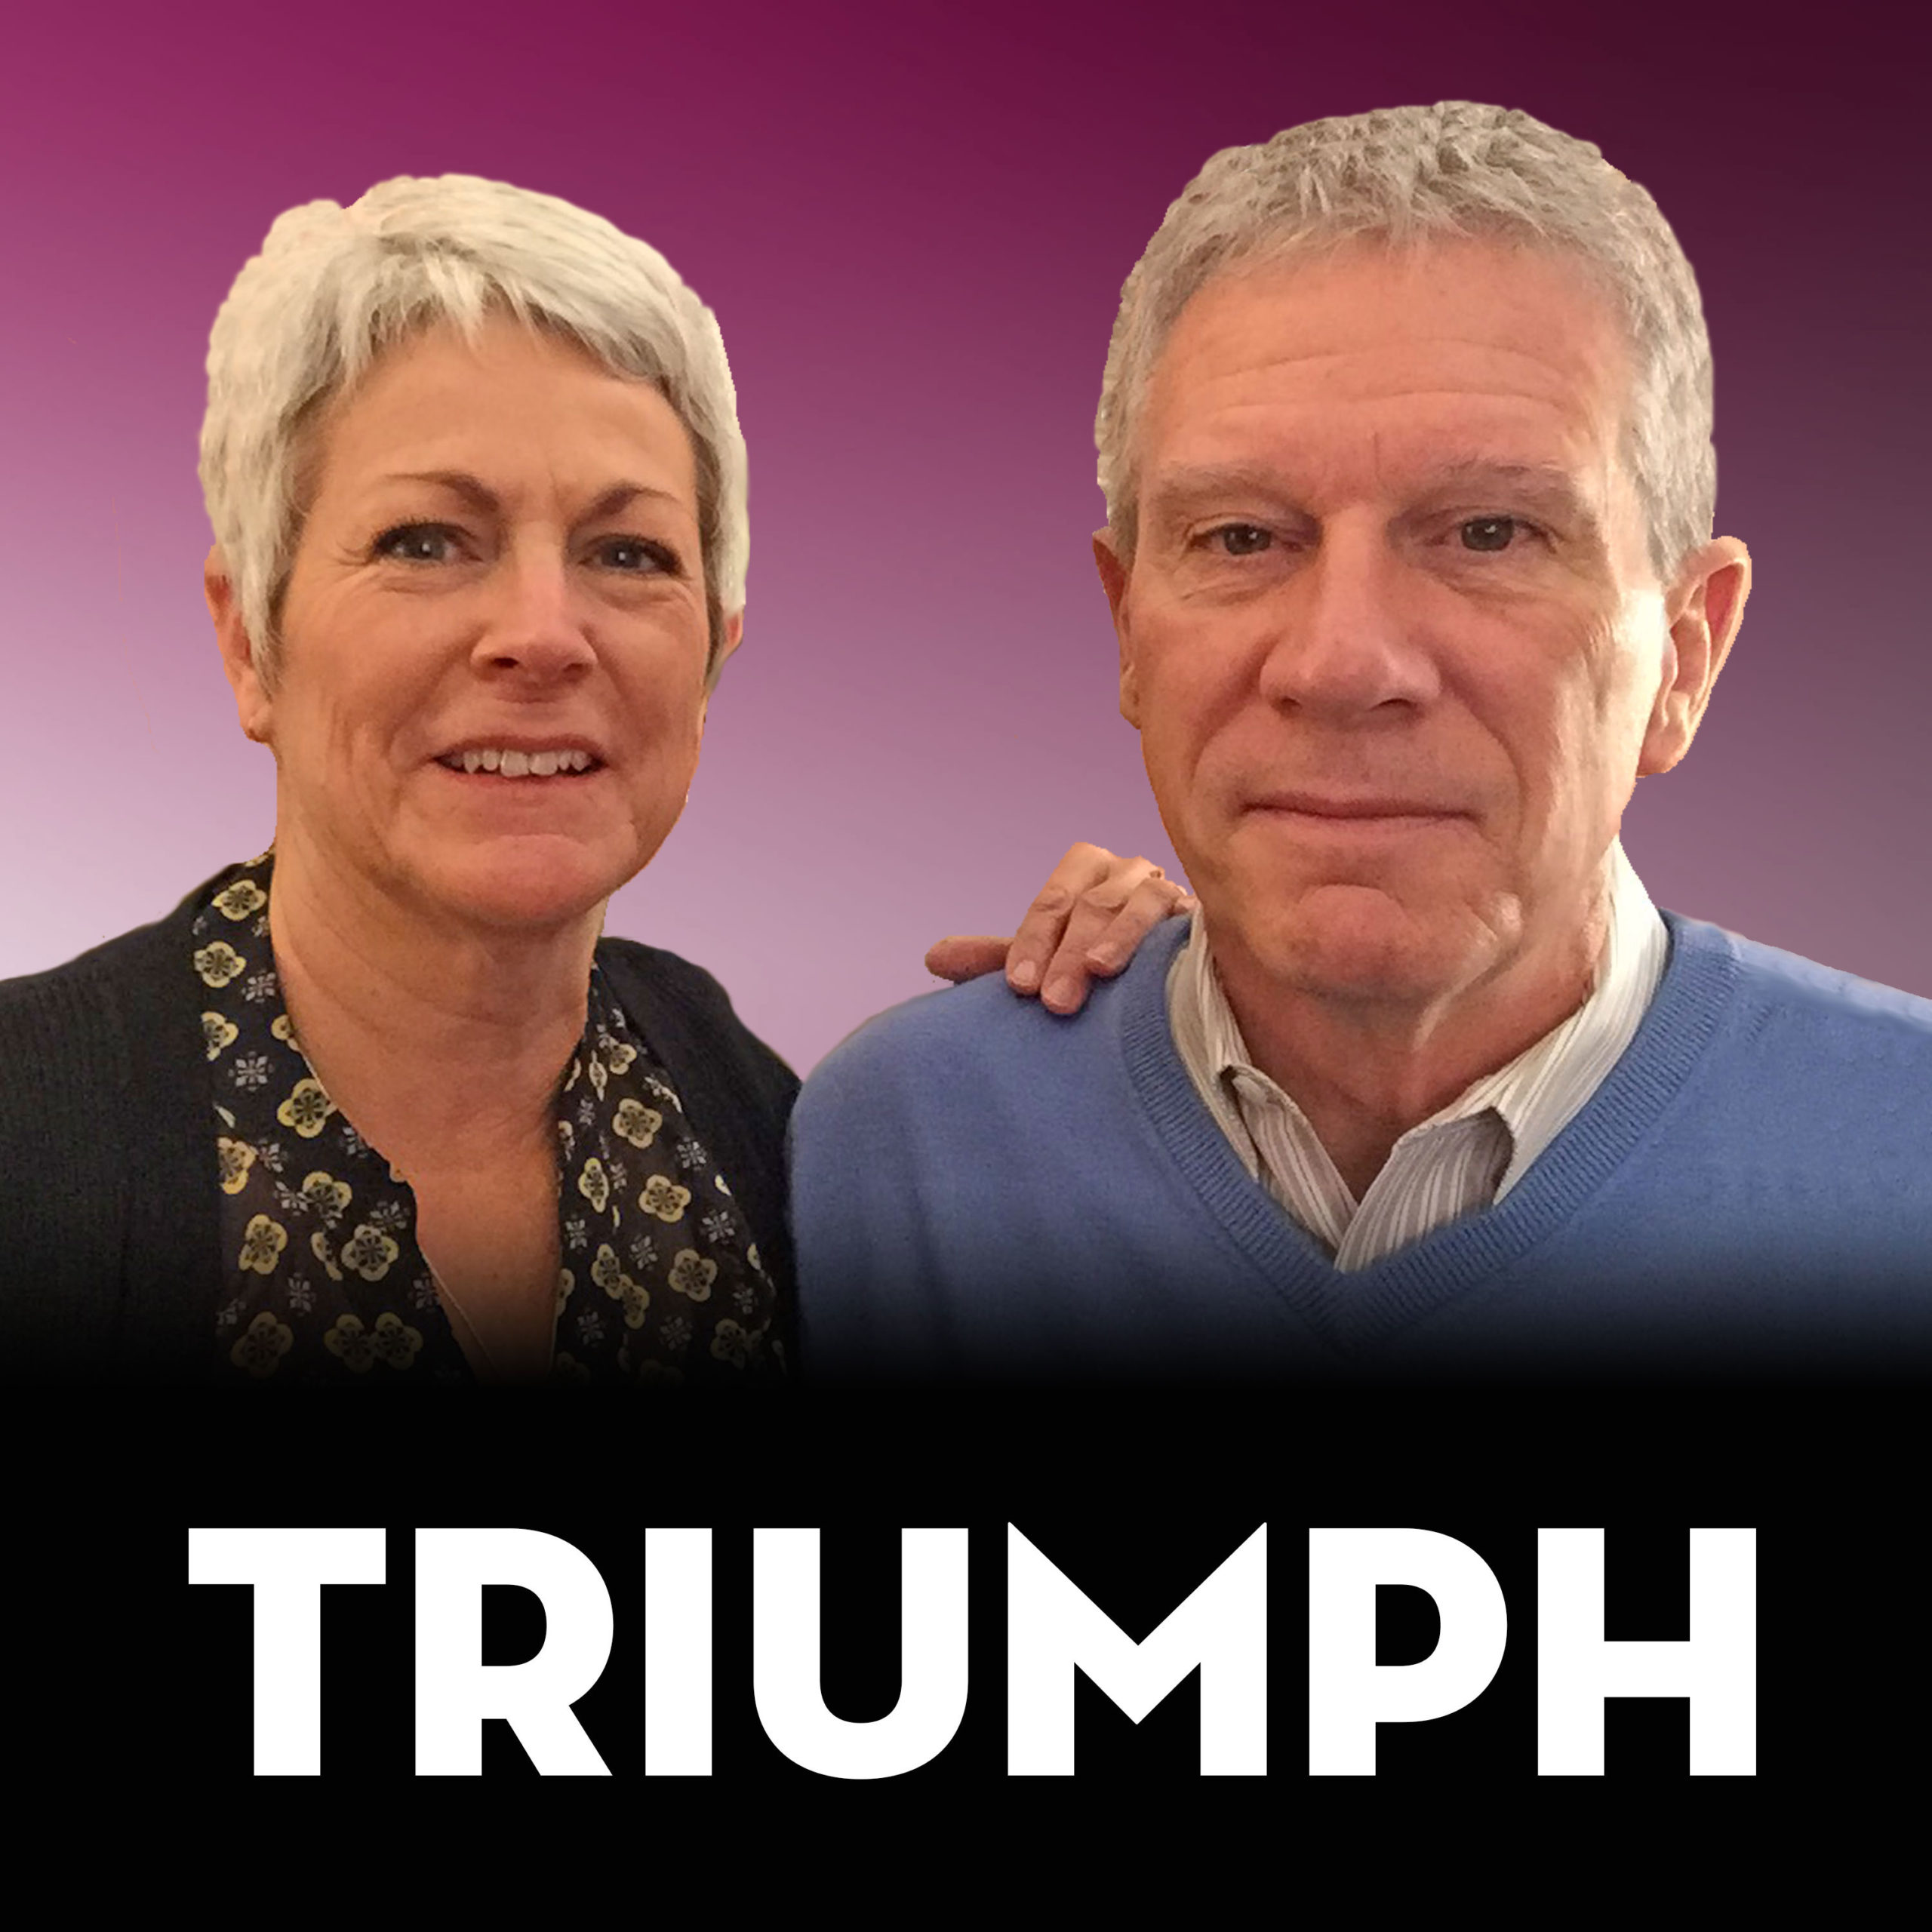 04/17/21-Triumph- Abortion's Impact On Relationships